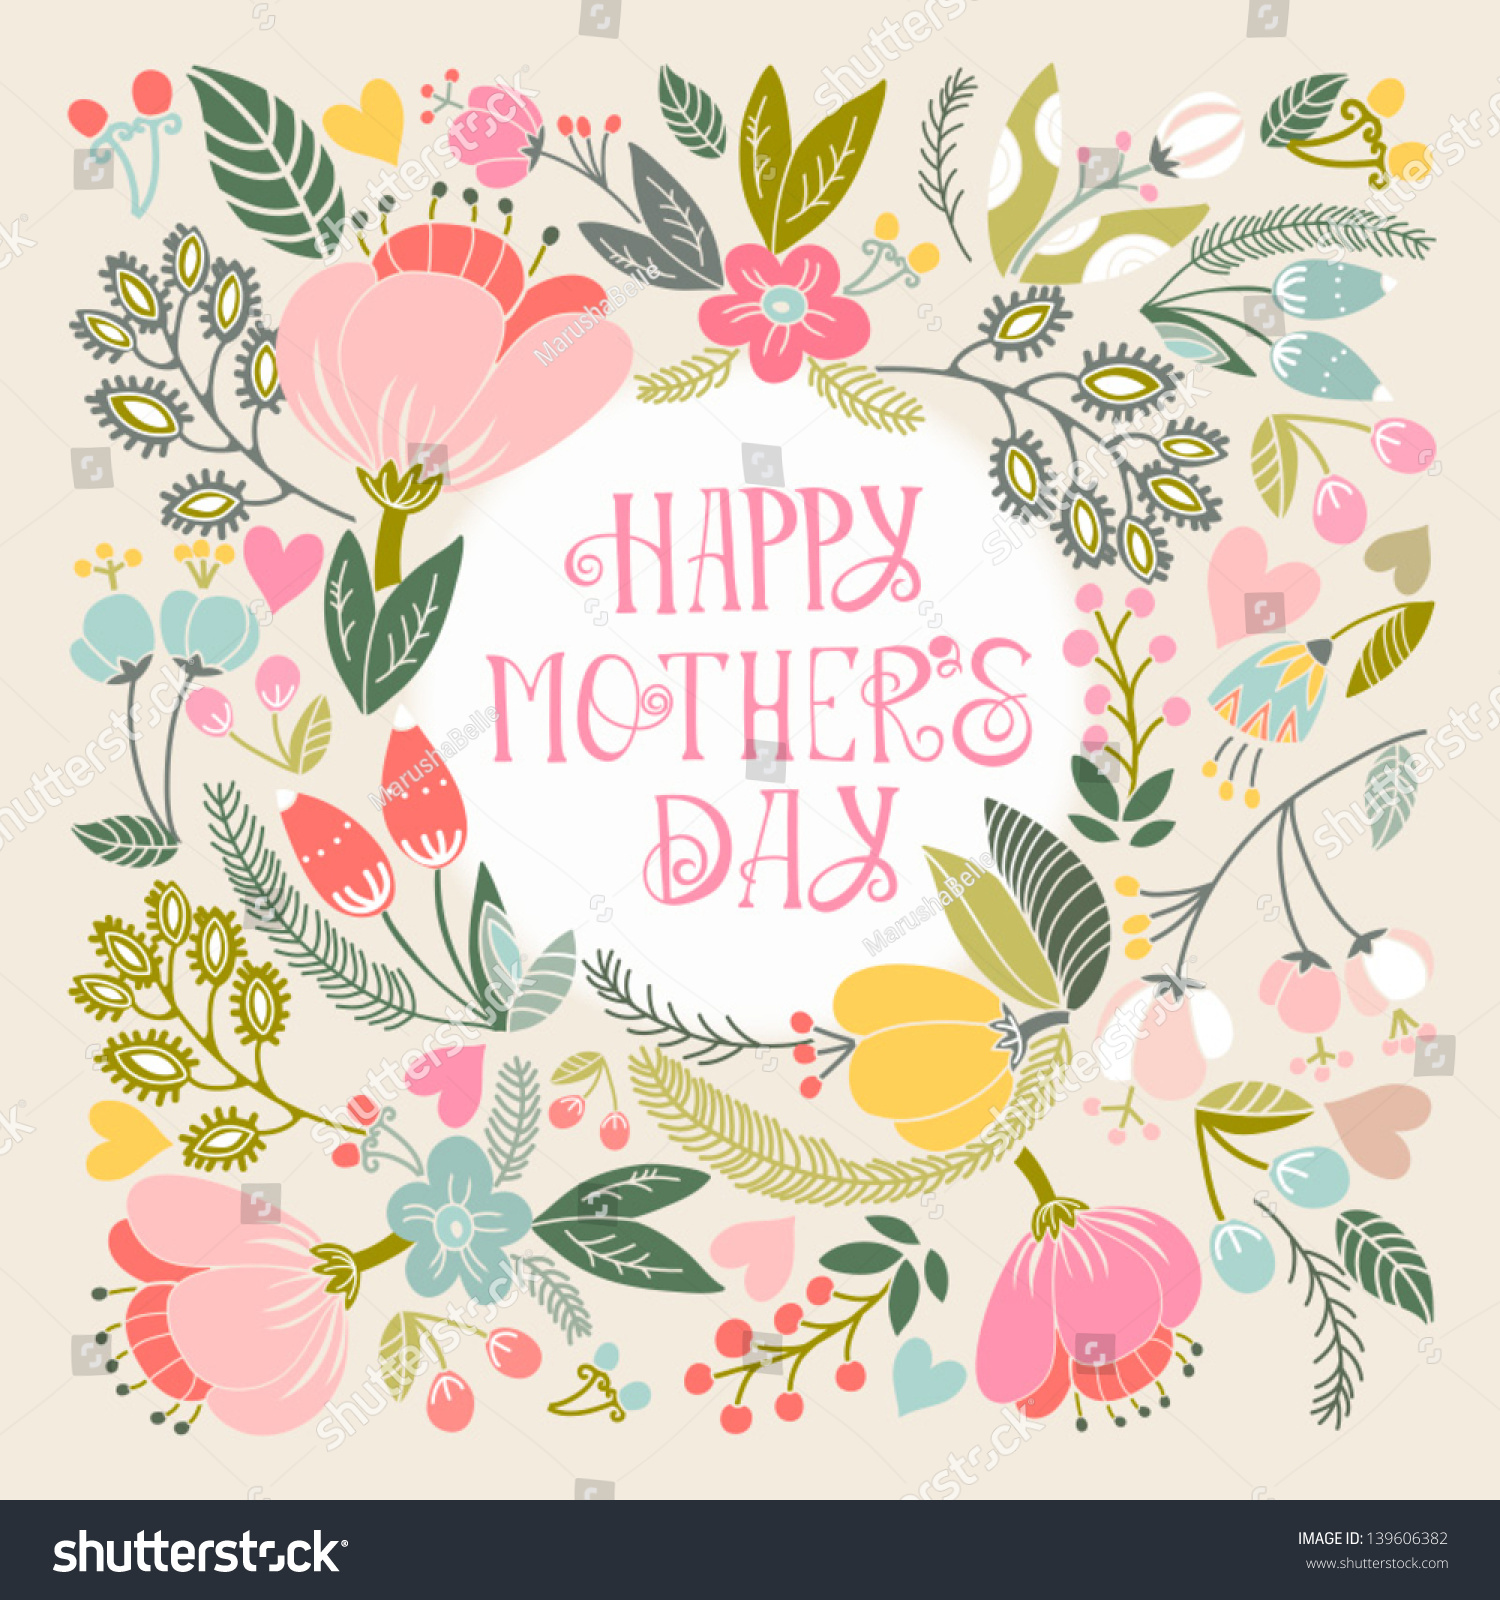 Beautiful Greeting Card Happy Mothers Day Bright Illustration Can Be Used As